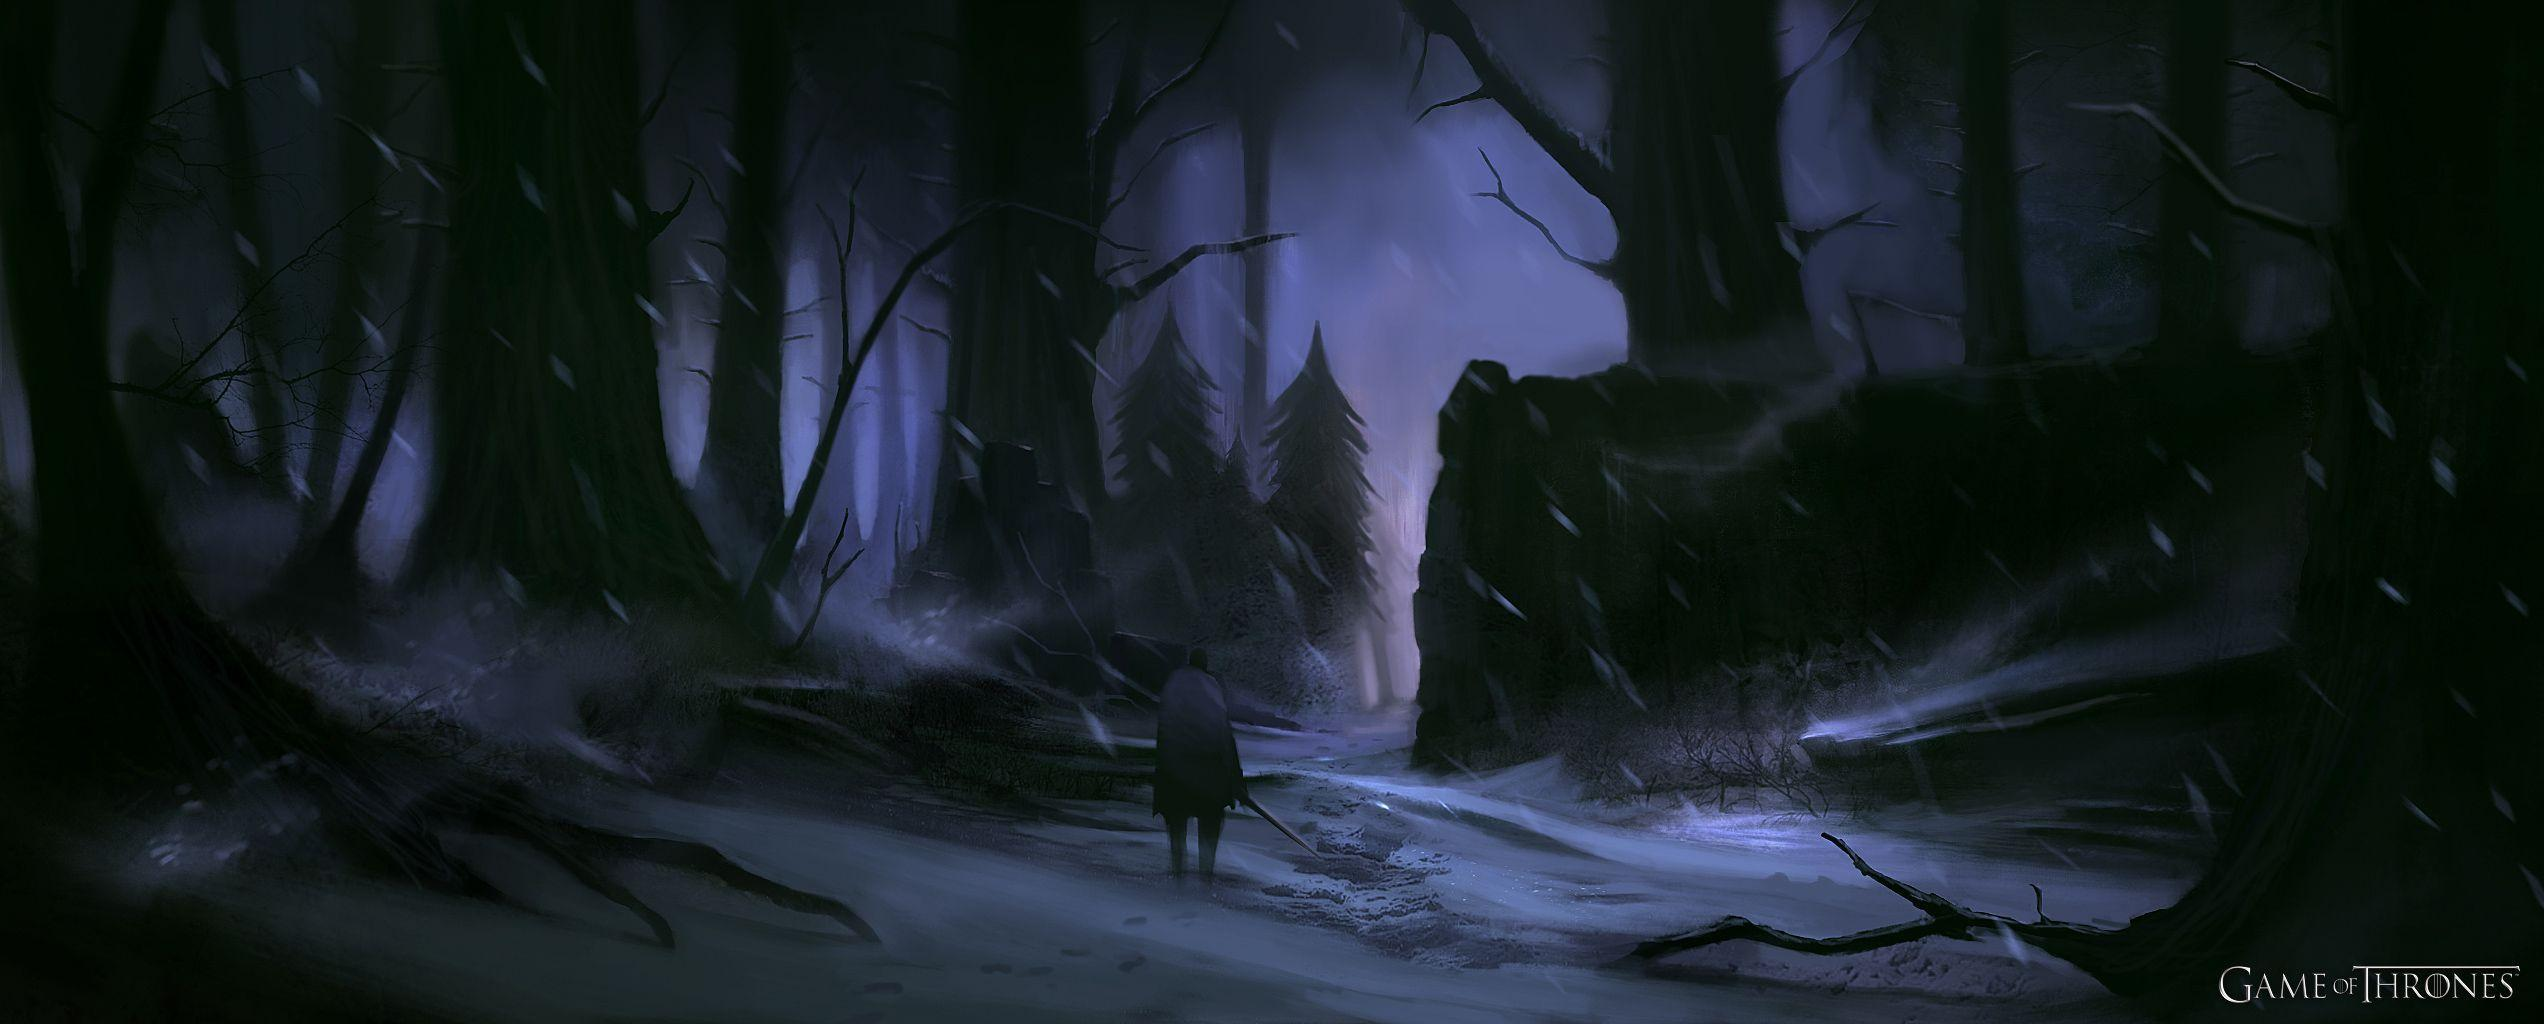 Game of Thrones Game Snow Storm Wallpaper